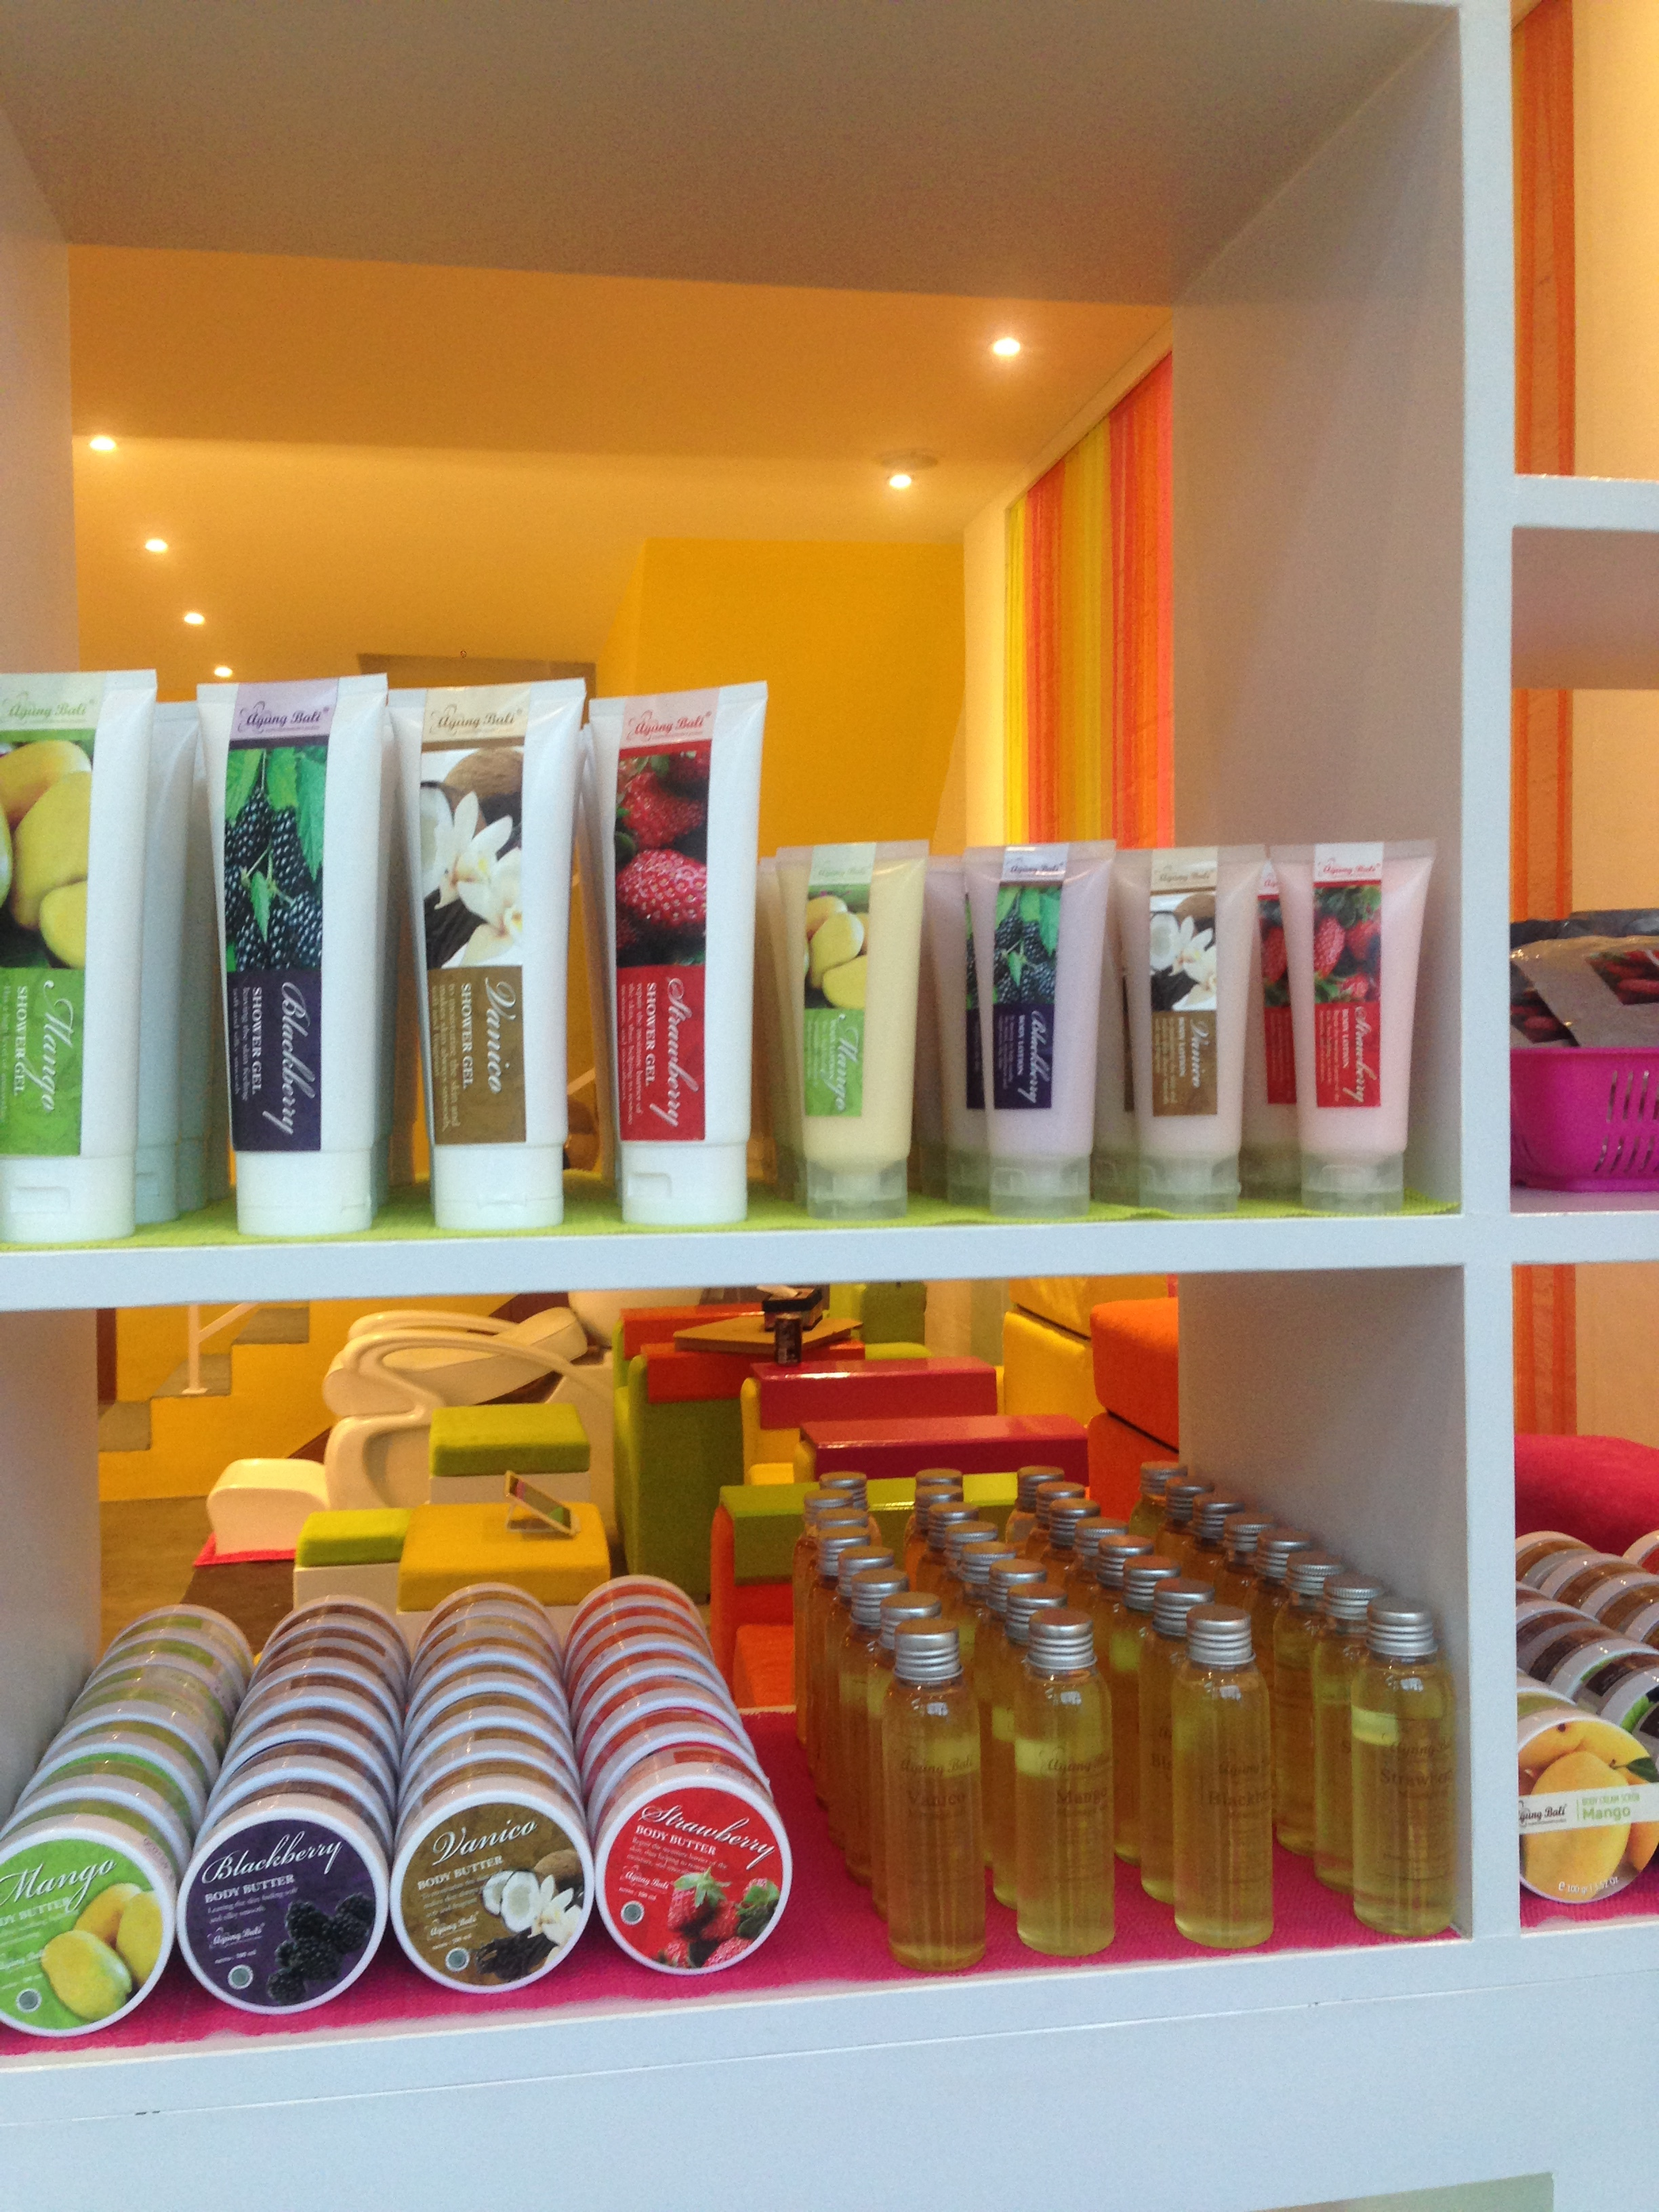 A wide range of products are available for purchase in store.